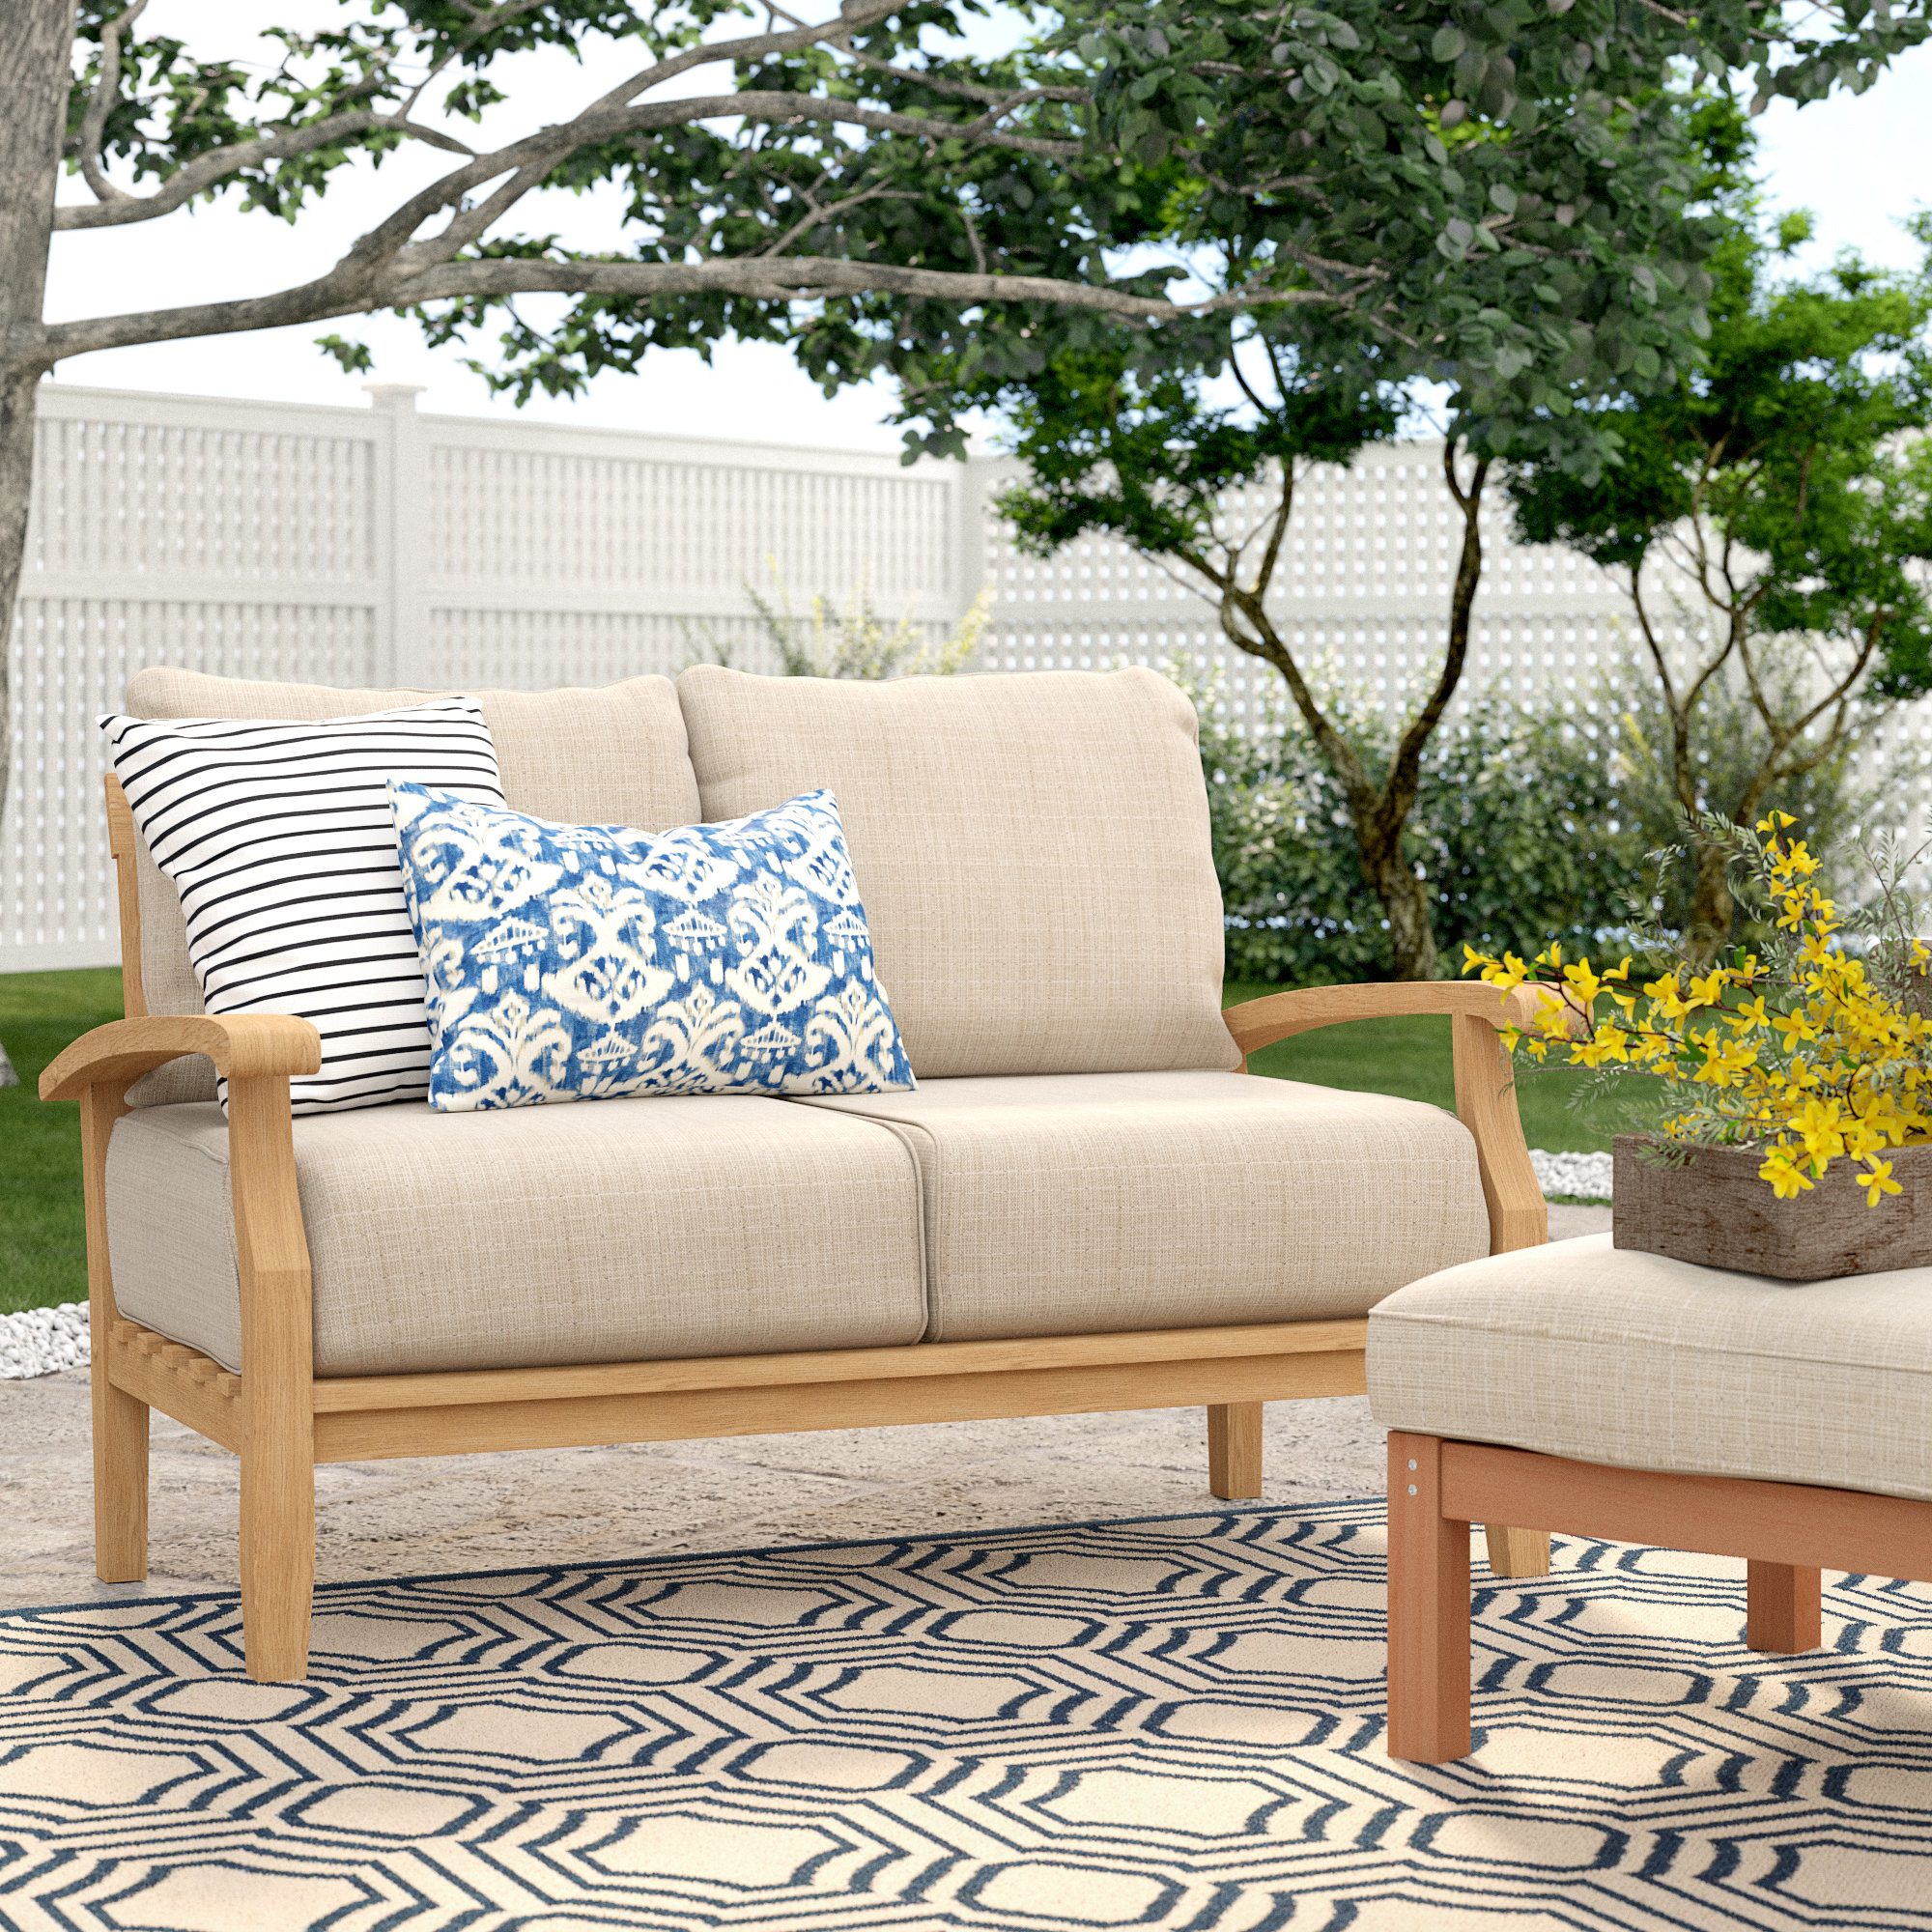 Most Up To Date Alburg Loveseats With Cushions Intended For Summerton Teak Loveseat With Cushions (View 17 of 25)